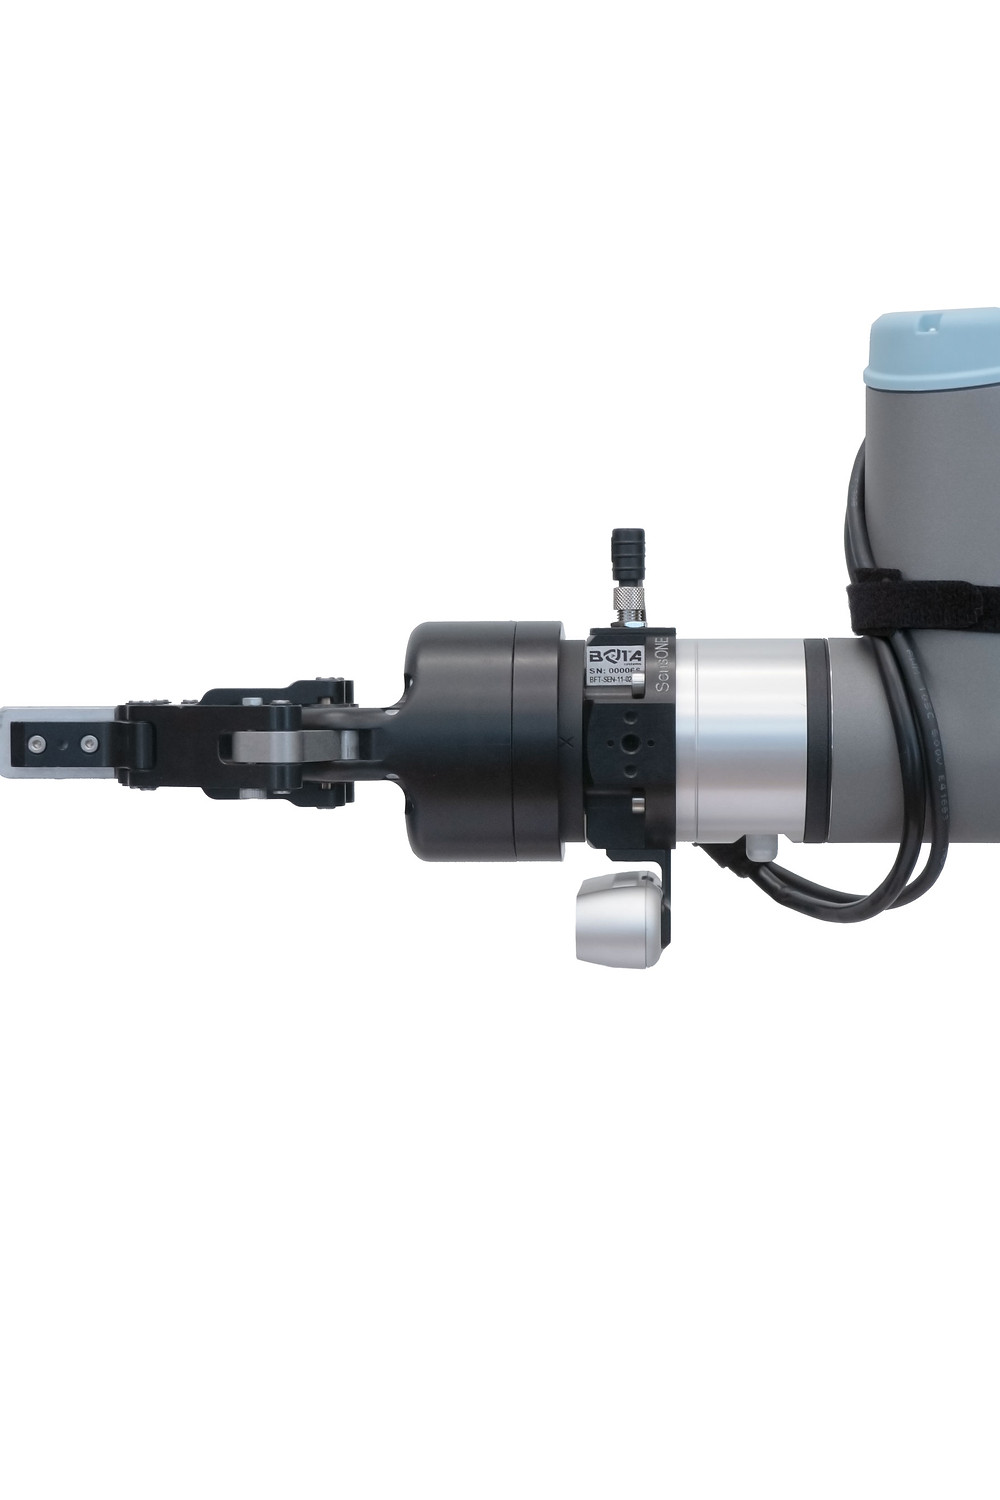 The SensONE force torque sensor by Bota Systems applied a robot